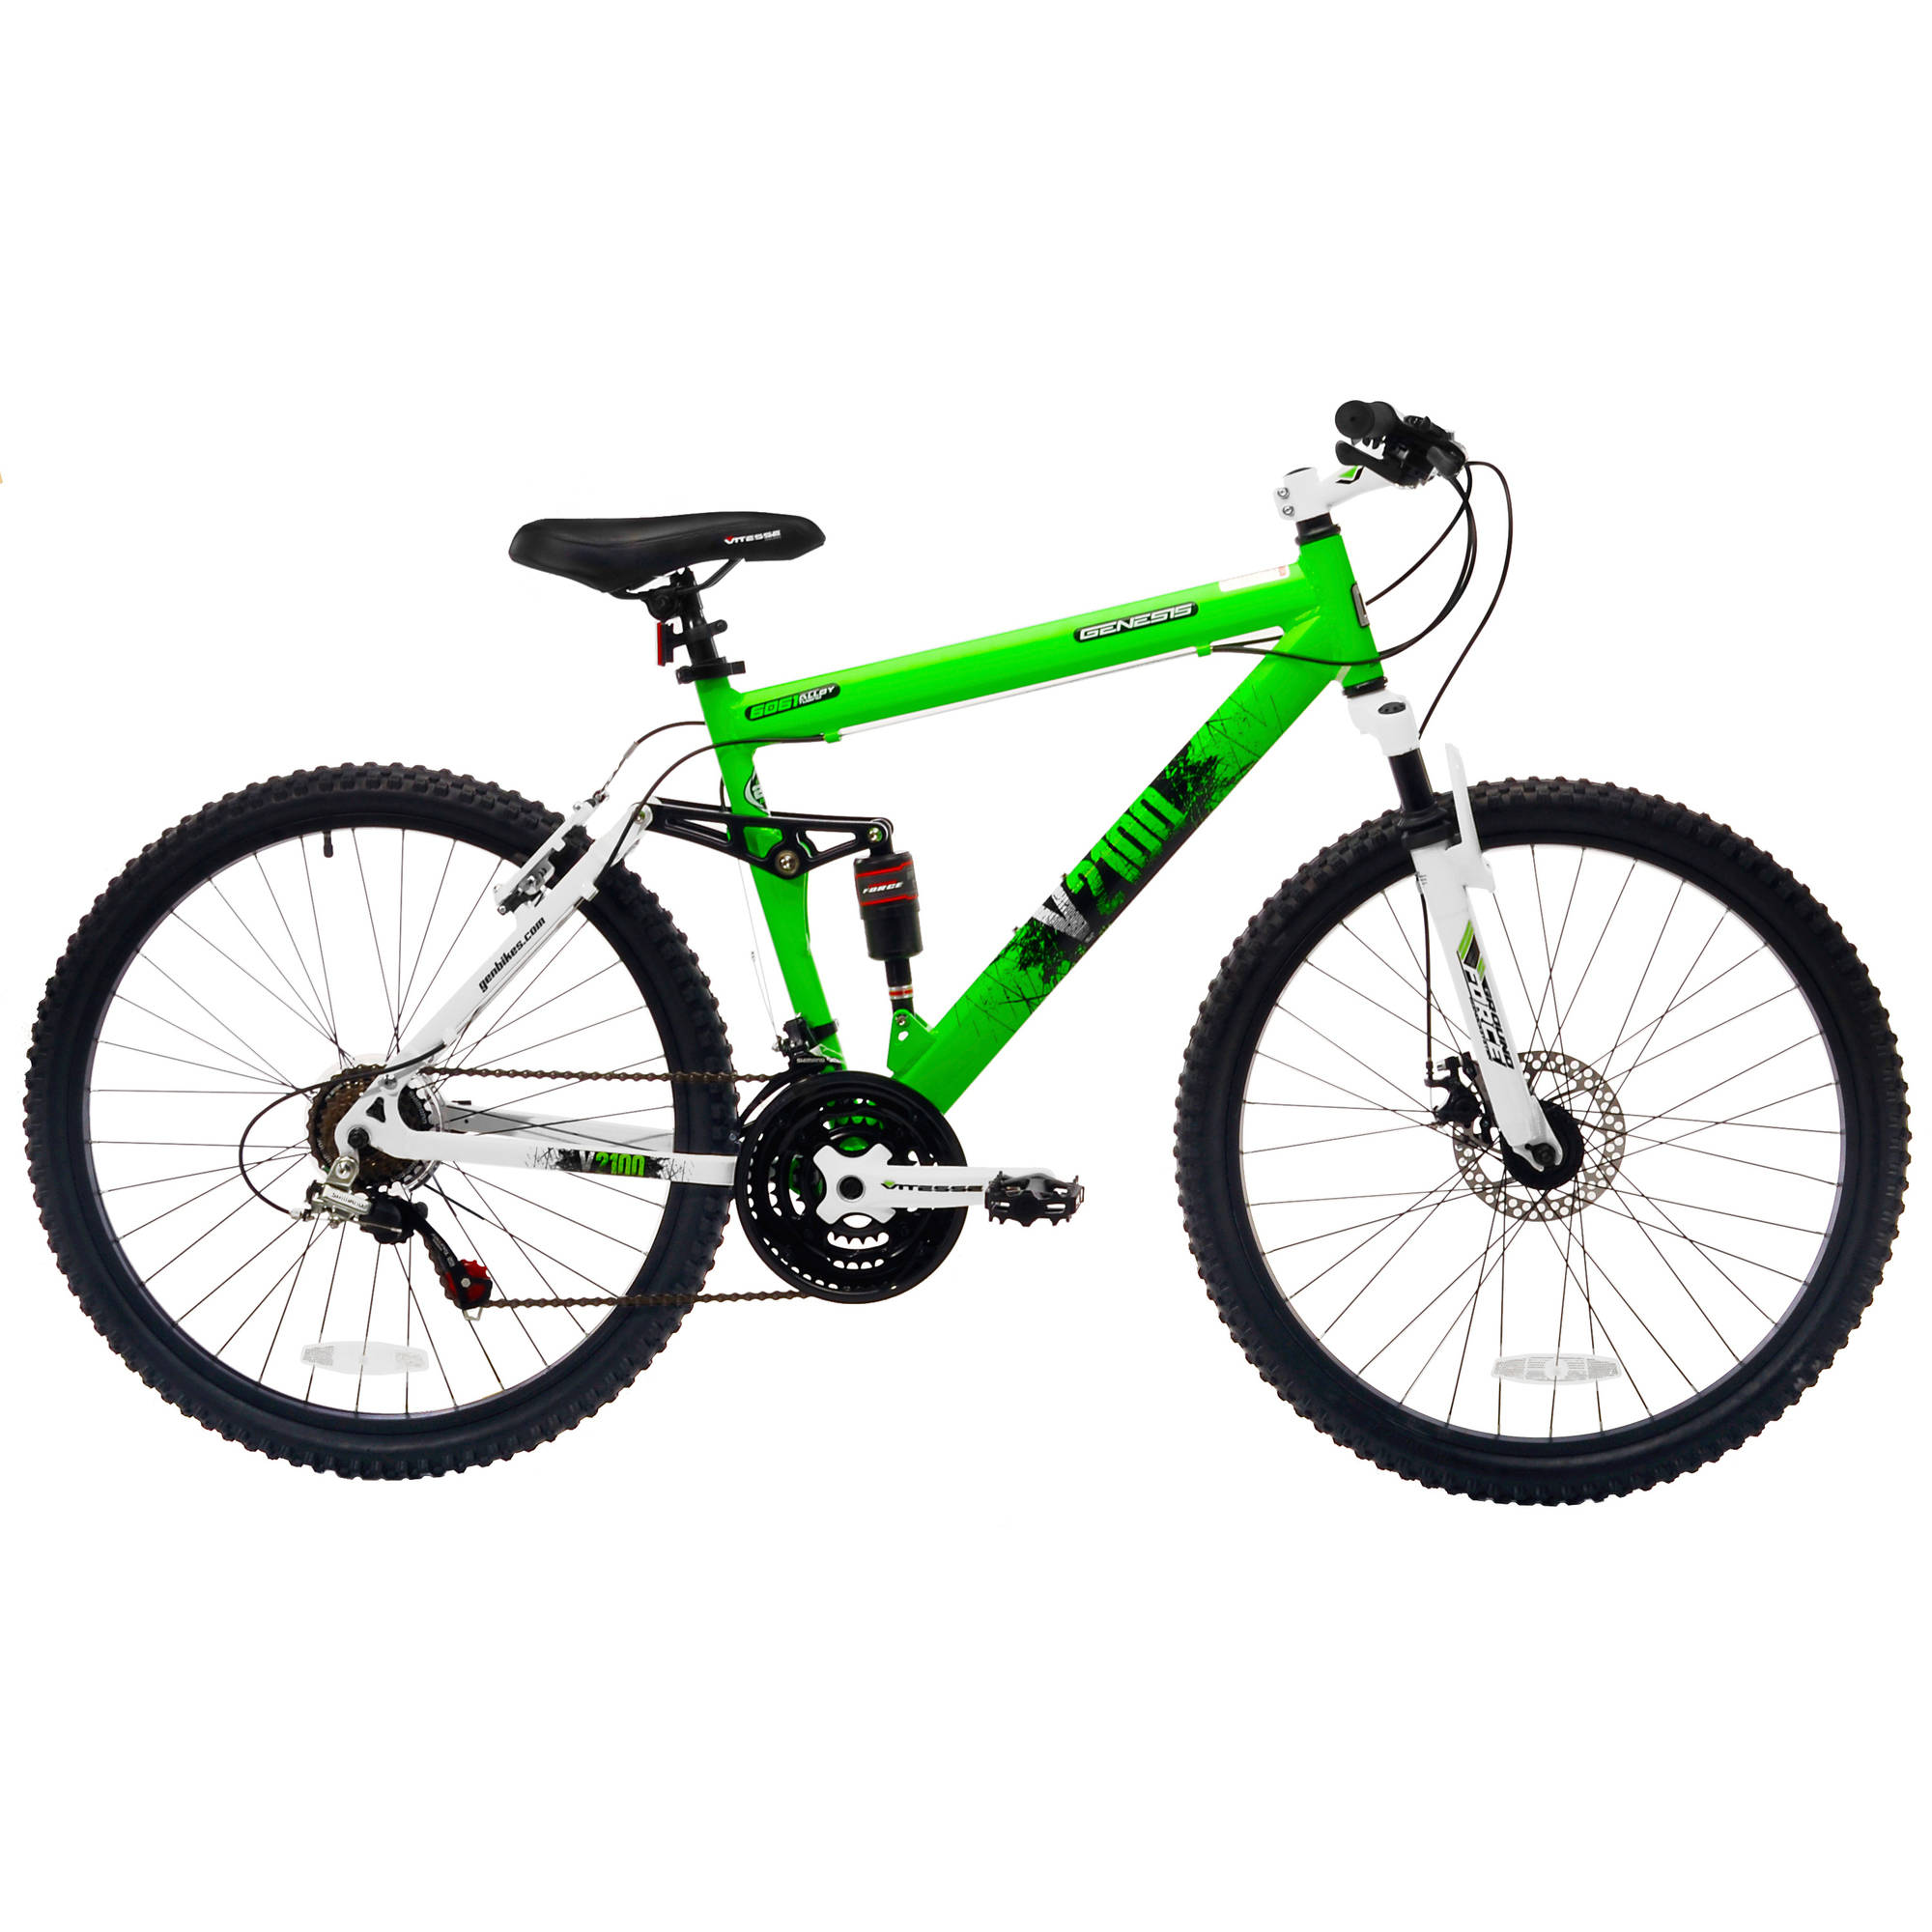 "26"" Genesis V2100 Men's Mountain Bike with Full Suspension, Available in 4 Colors"